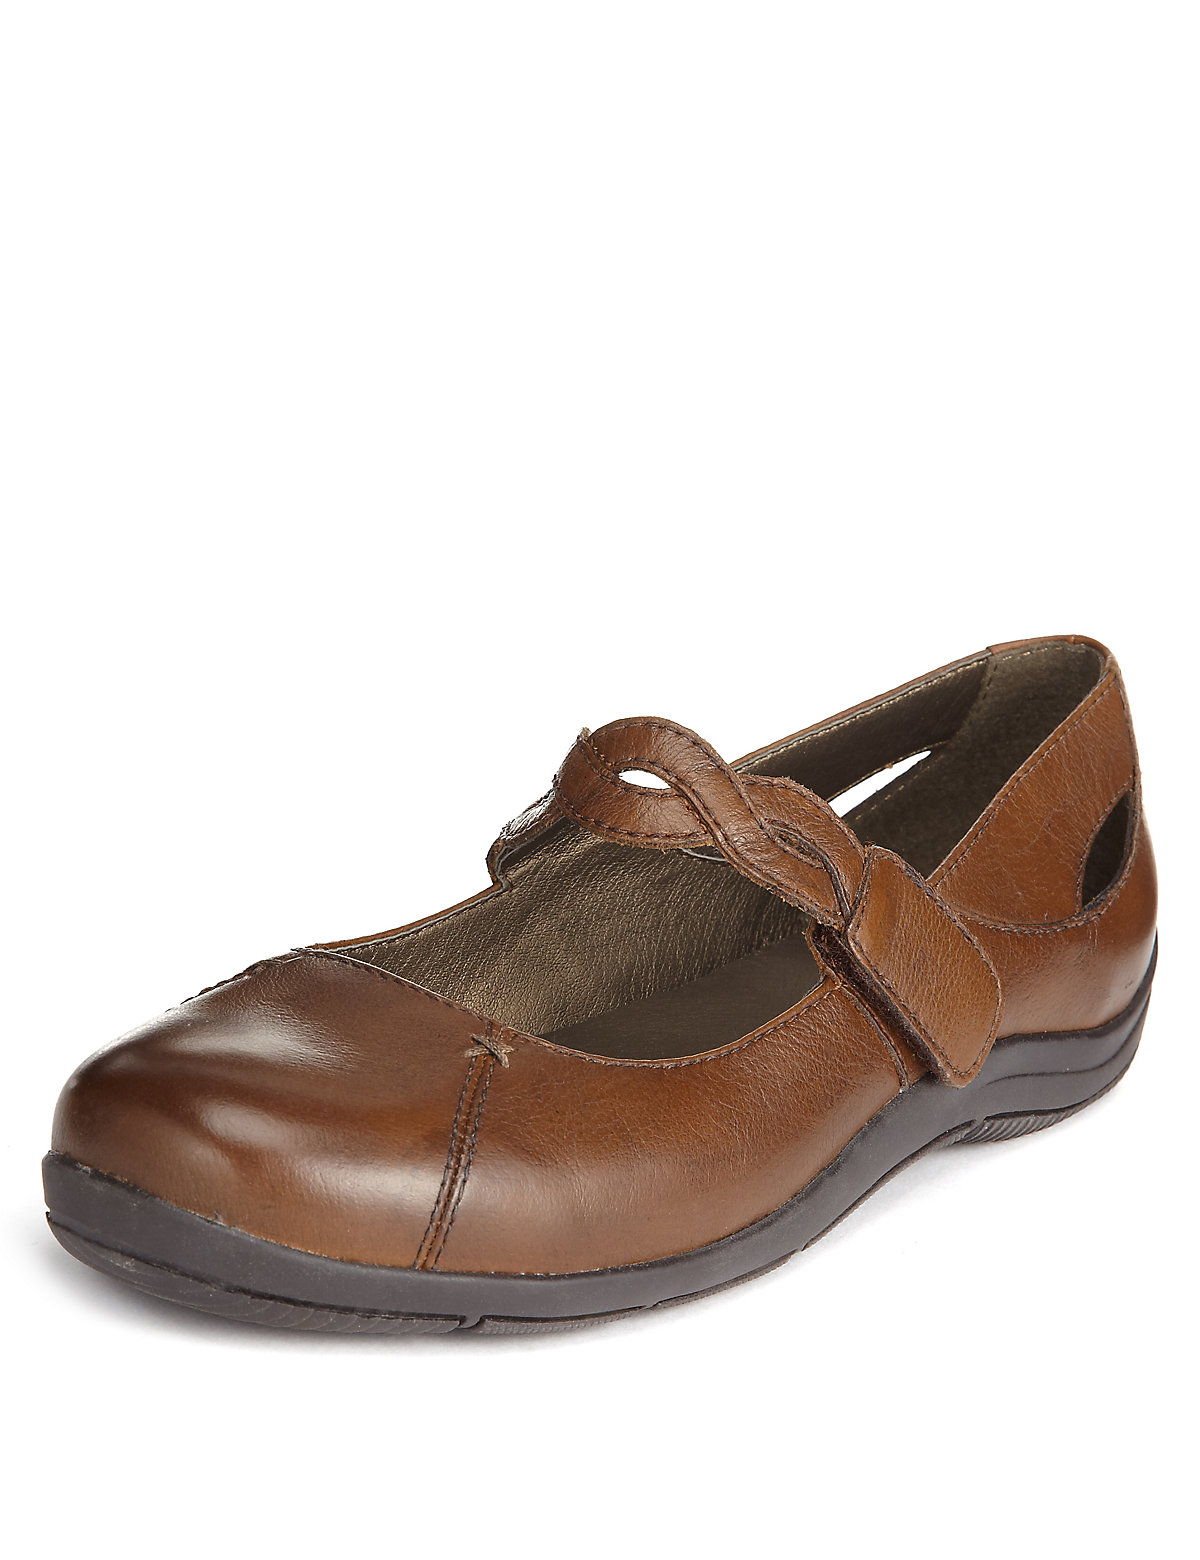 Marks Spencer Ladies Shoes Wide Fit